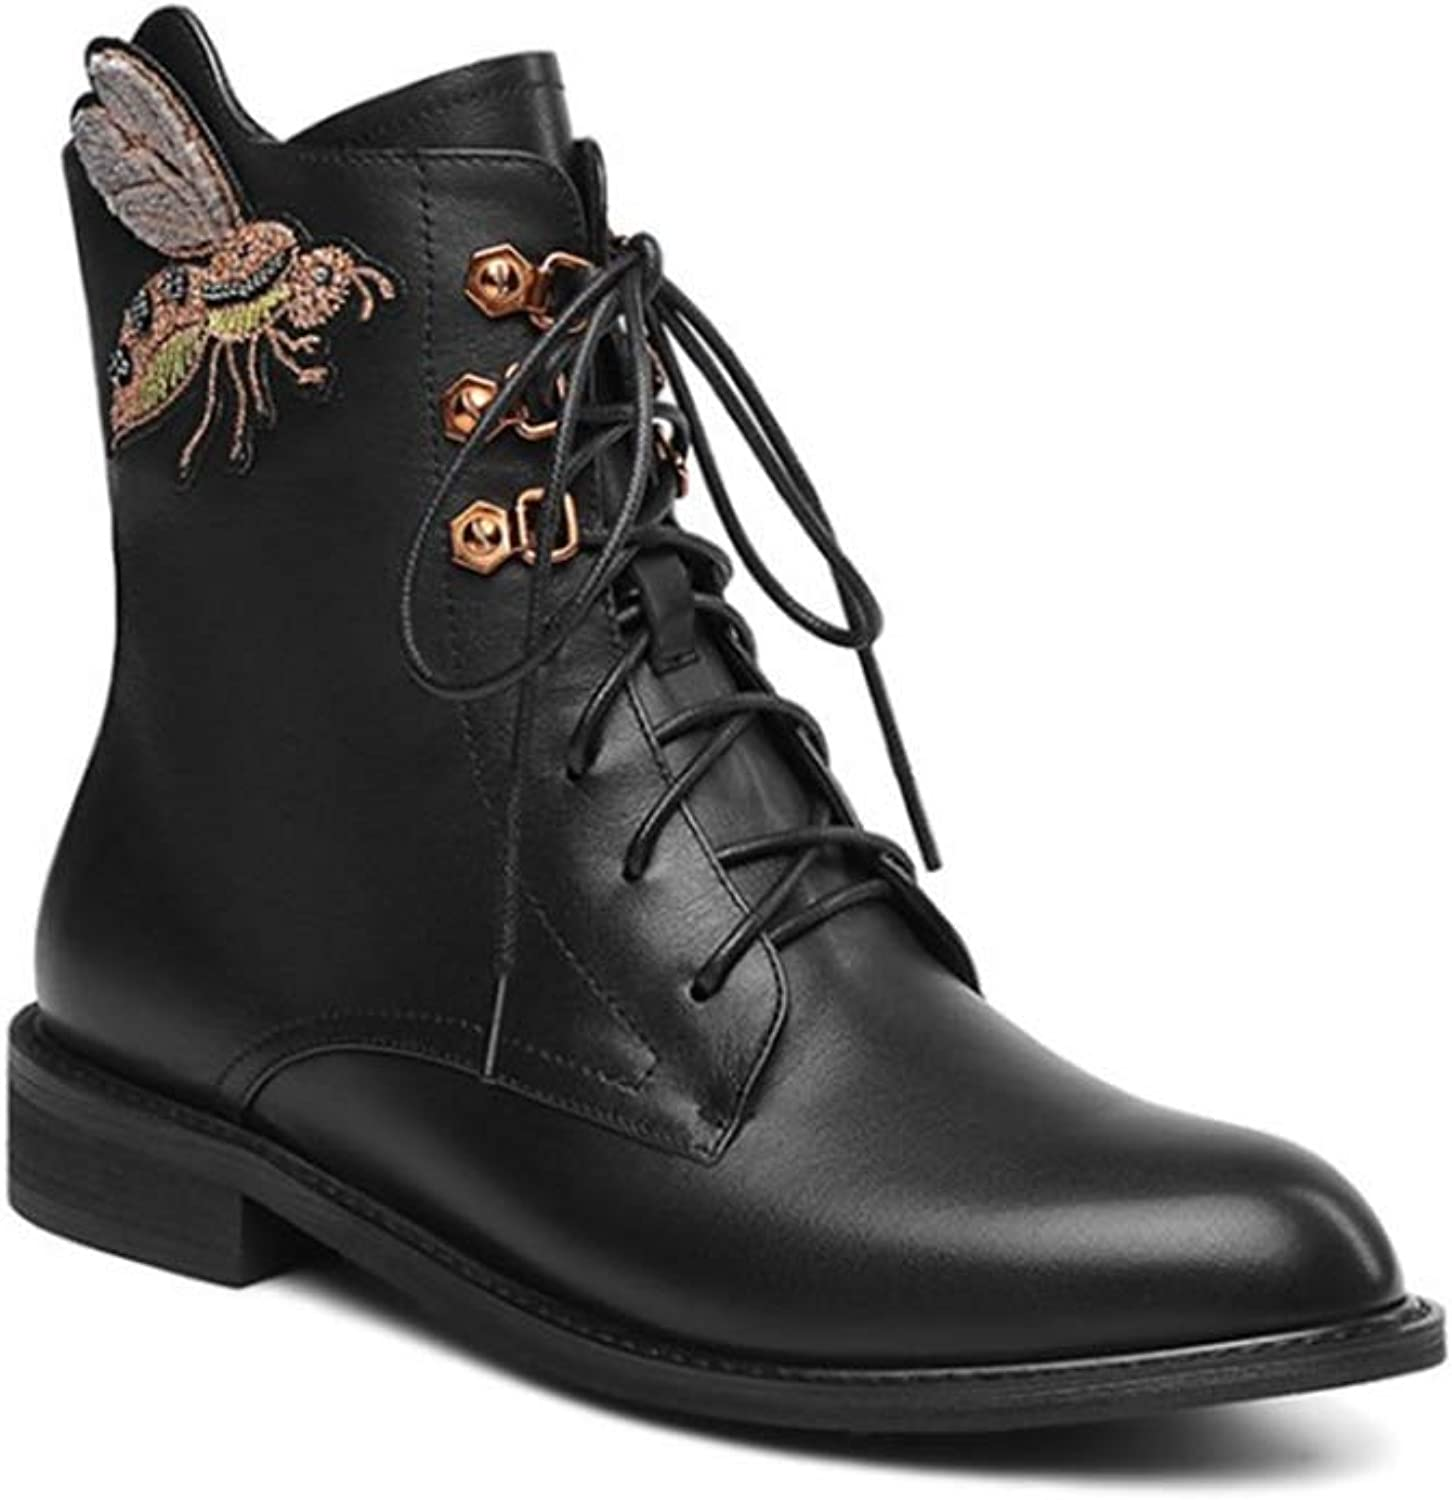 Women's Boots British Retro Pointed Martin Boots Lace Up Leather Autumn and Winter Plus Velvet Ankle Boots Rough Locomotive Boots (color   Black, Size   34)